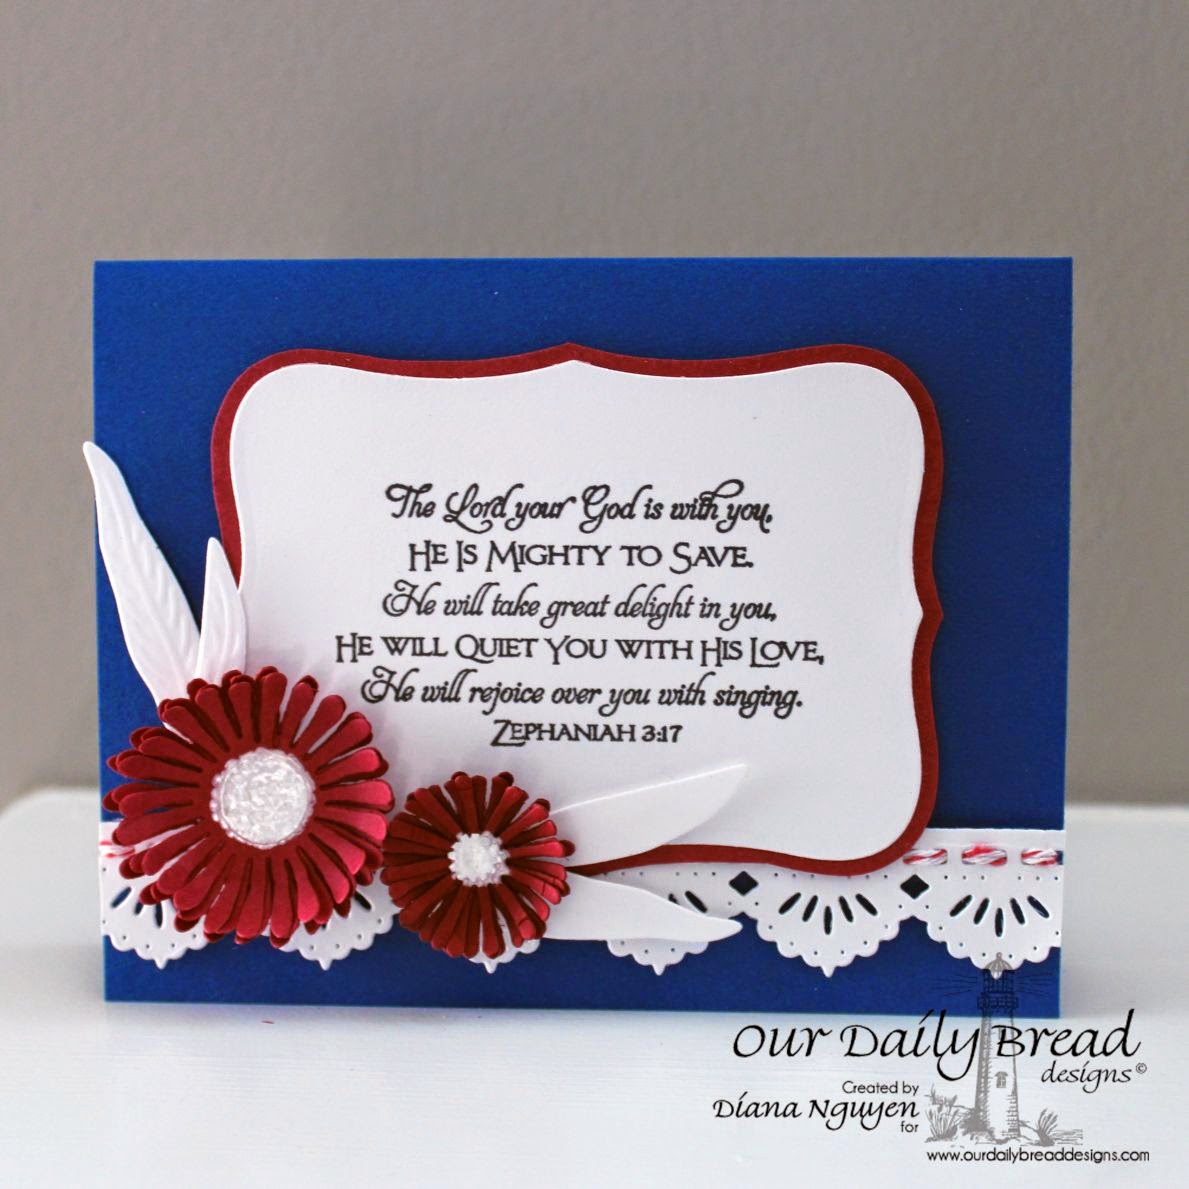 Our Daily Bread Designs, Diana Nguyen, aster, scripture, scripture collection